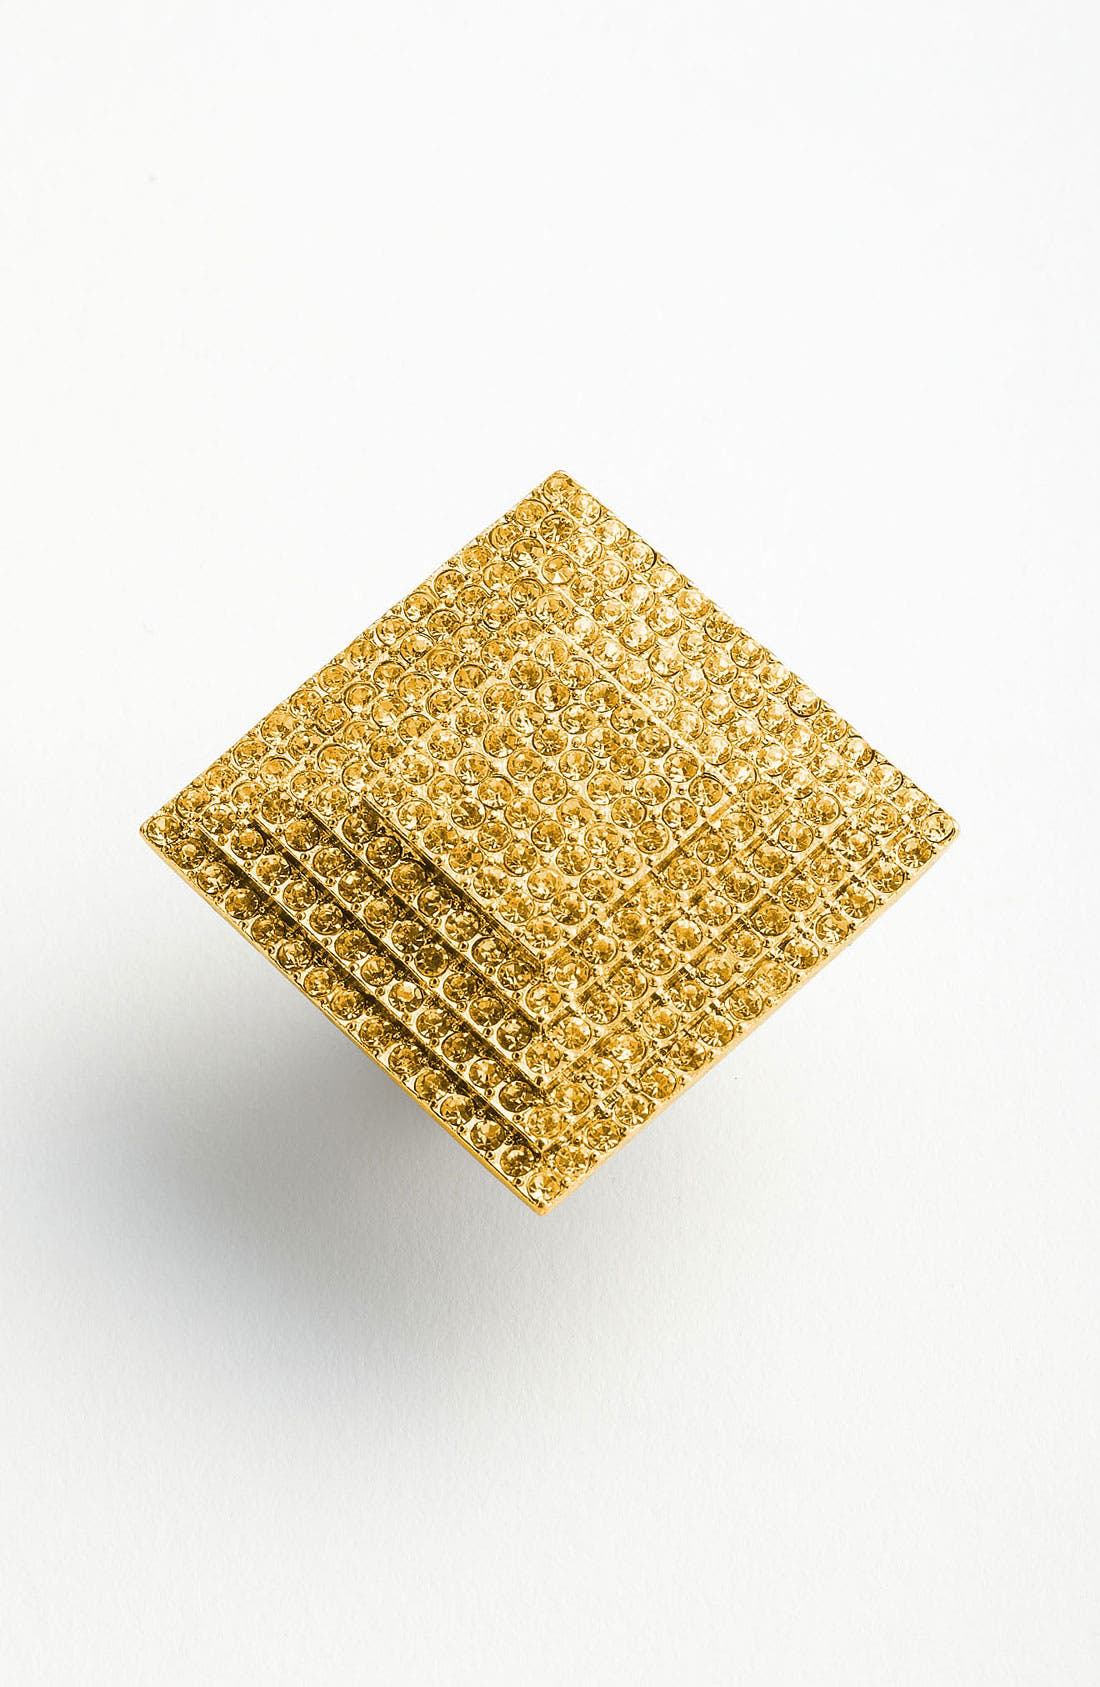 Main Image - Natasha Couture Large Square Crystal Ring